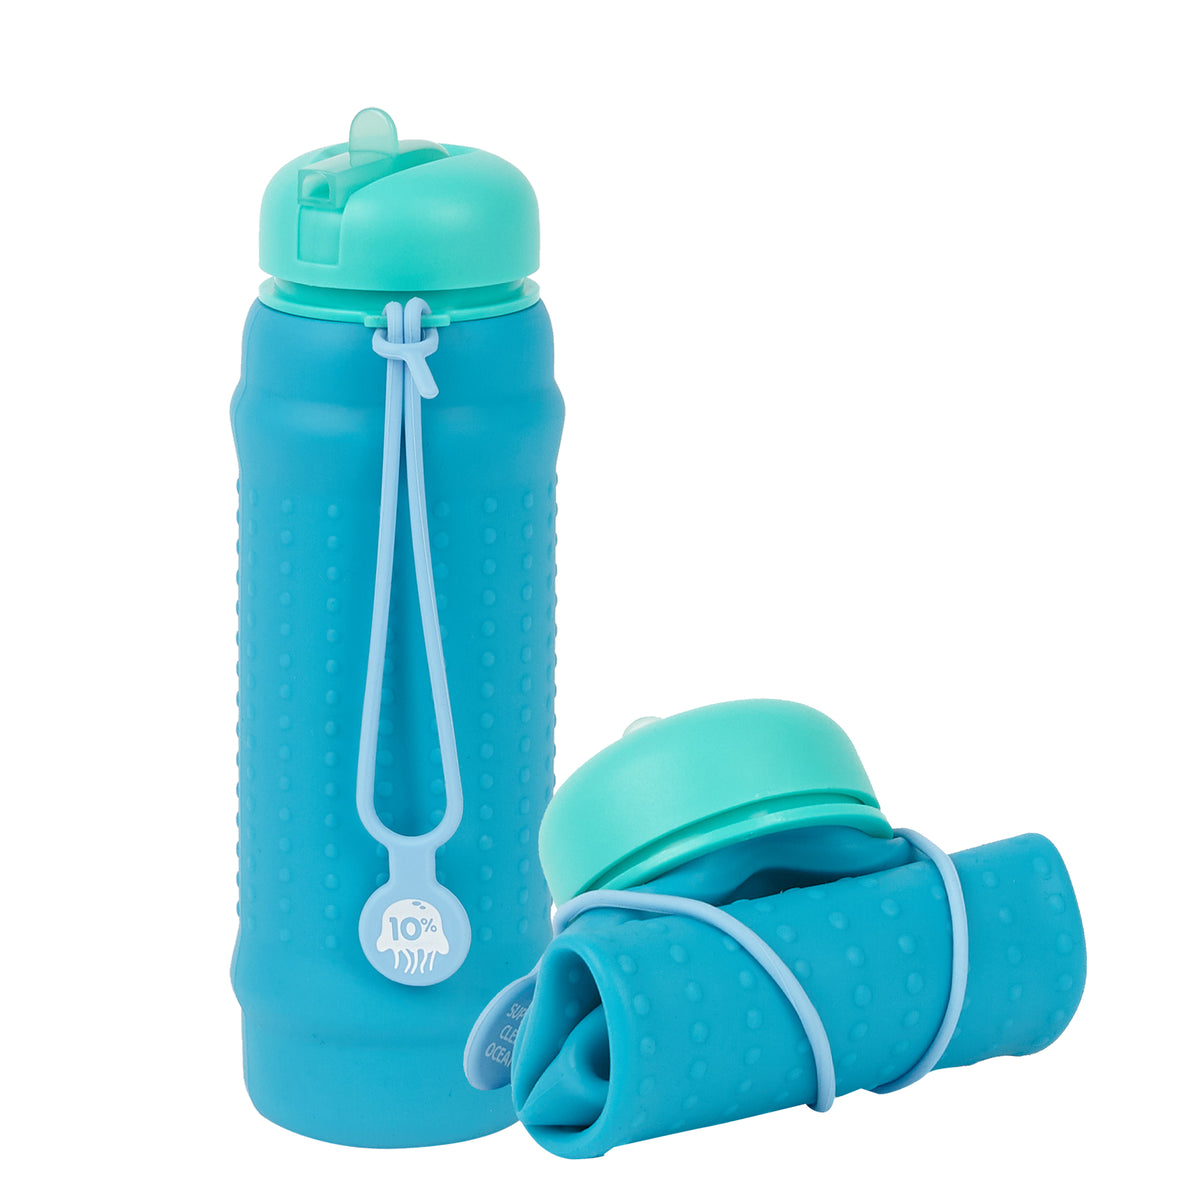 Rolla Bottle - Aqua, Teal Lid + Dusty Blue Strap - tall and rolled